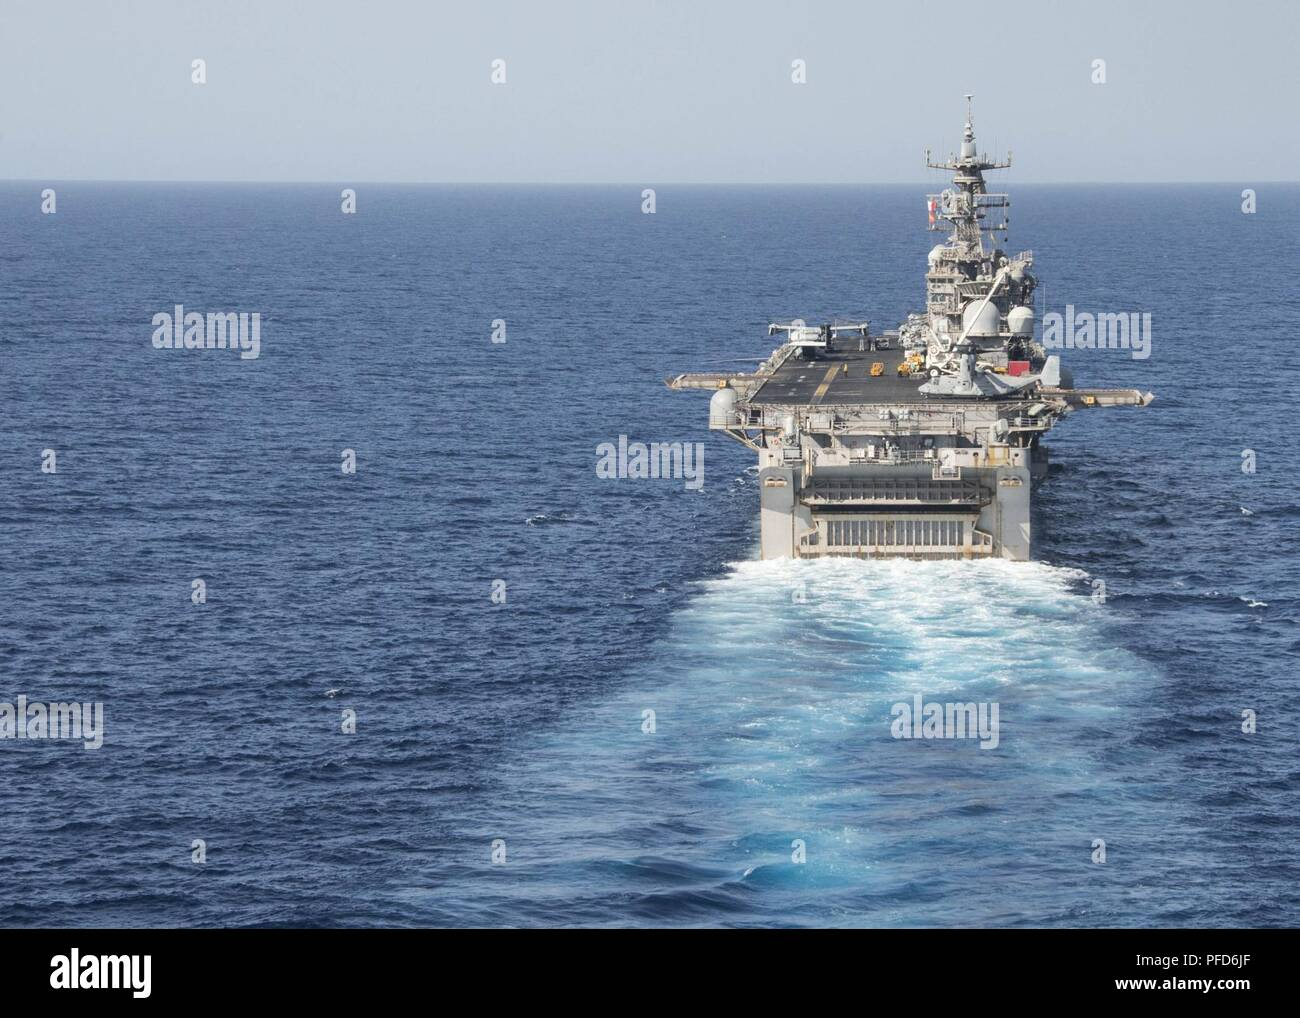 5TH FLEET AREA OF OPERATIONS (June 8, 2018) The Wasp-class amphibious assault ship USS Iwo Jima (LHD 7) steams in the 5th Fleet Area of Operations, June 8, 2018. Iwo Jima, homeported in Mayport, Fla., is on deployment to the U.S. 5th Fleet area of operations in support of maritime security operations to reassure allies and partners, and preserve the freedom of navigation and the free flow of commerce in the region. Stock Photo